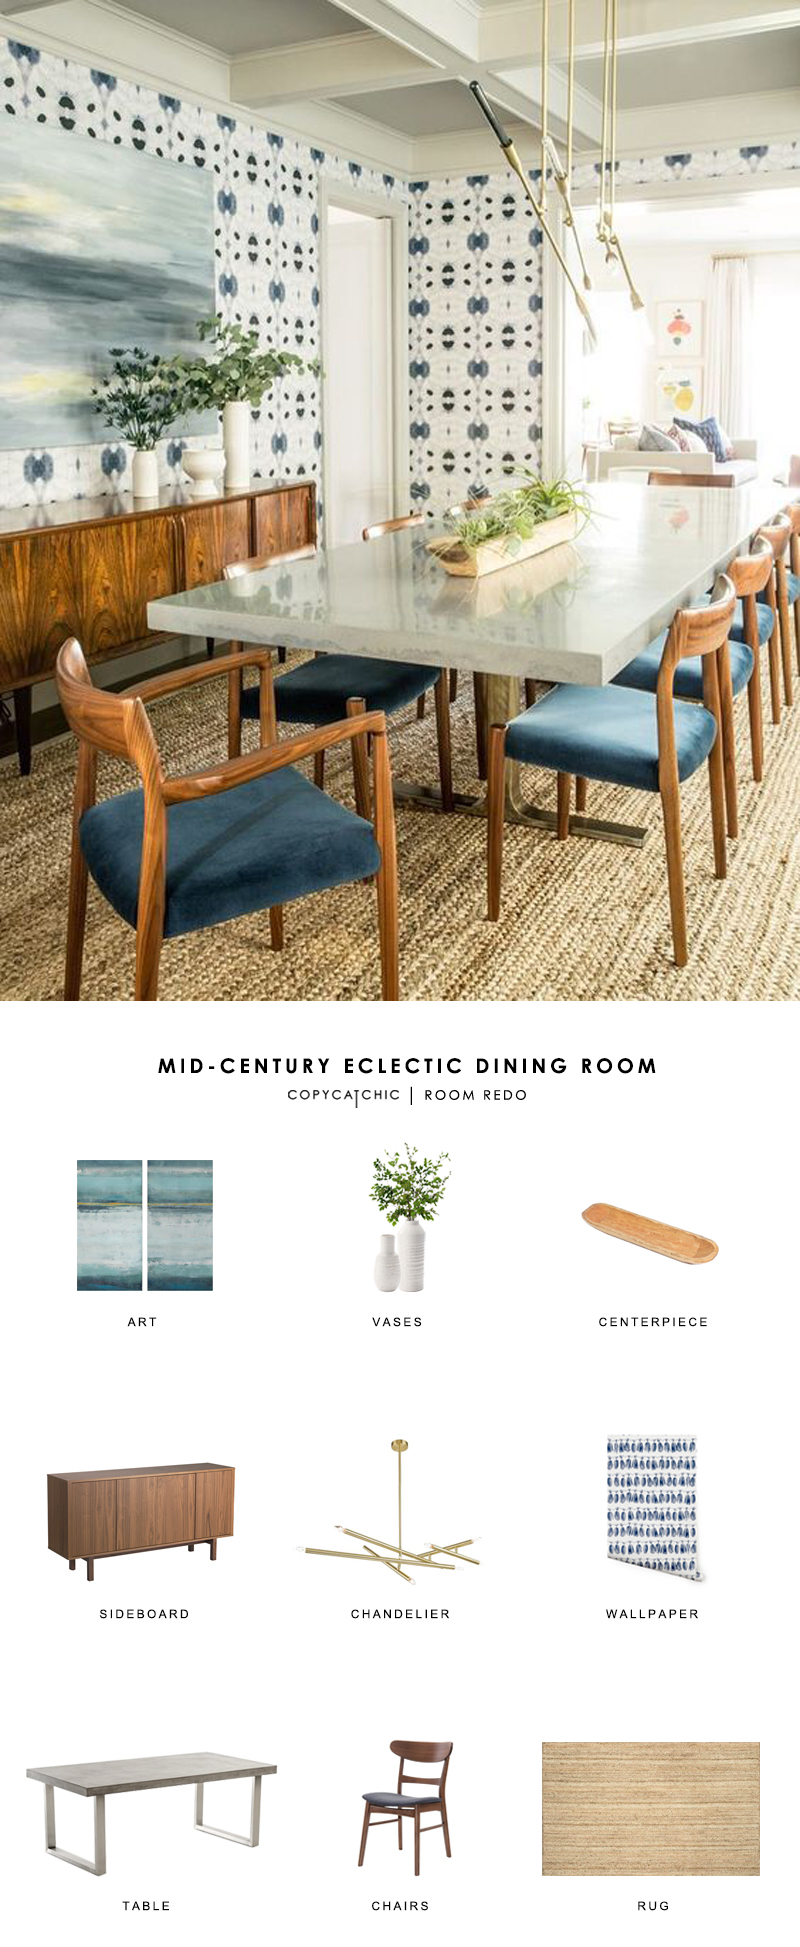 Copy Cat Chic Room Redo | Mid-Century Eclectic Dining Room - copycatchic